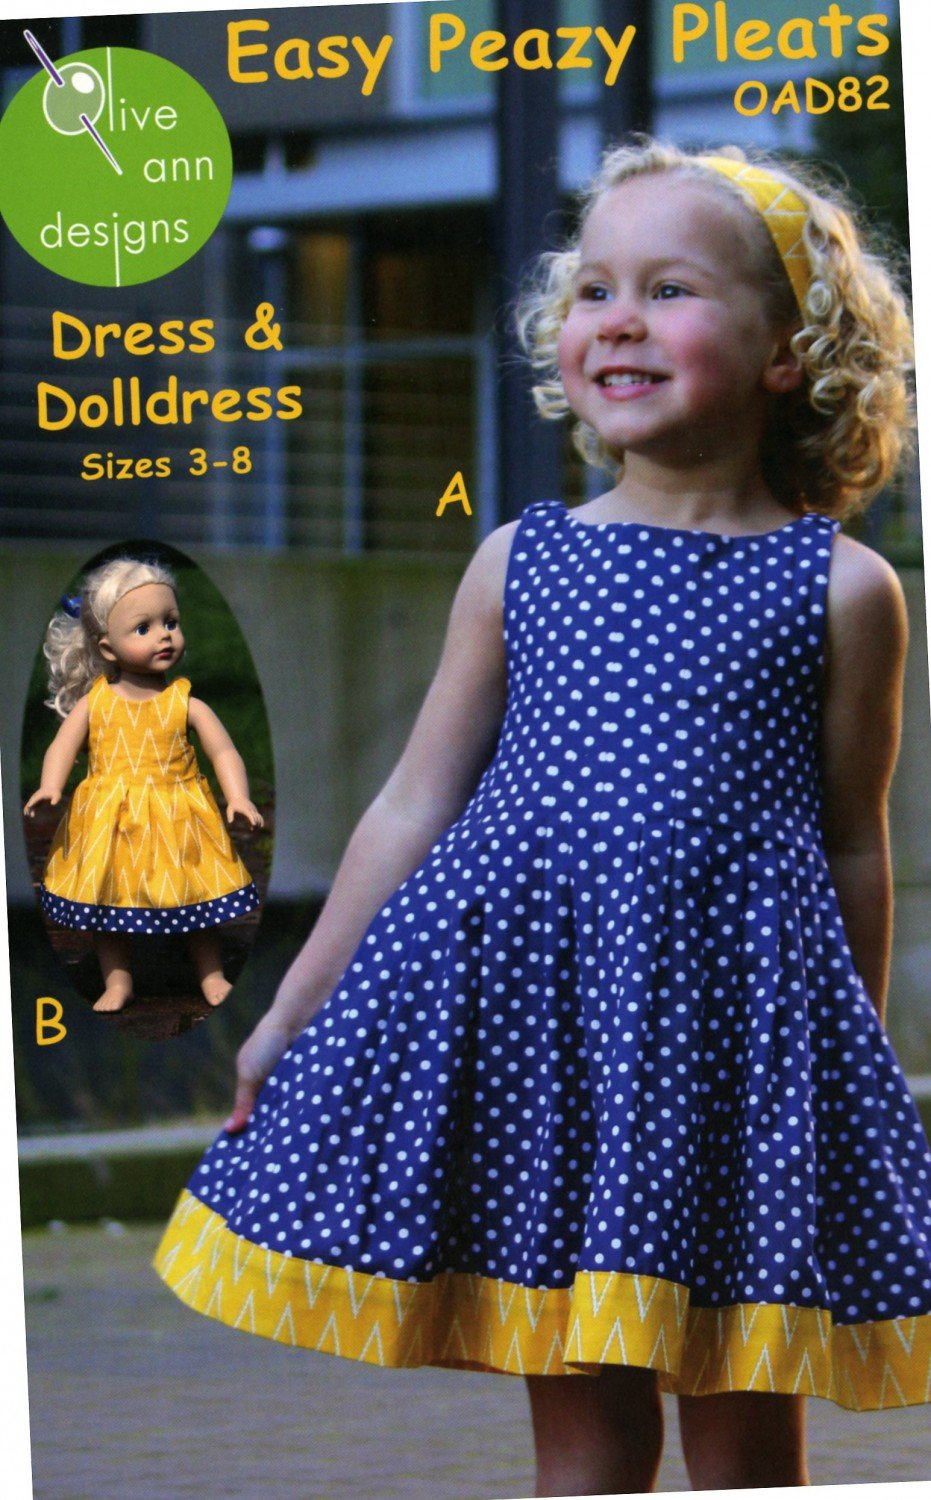 Easy Peazy Pleats Dress & Doll Dress # OAD82